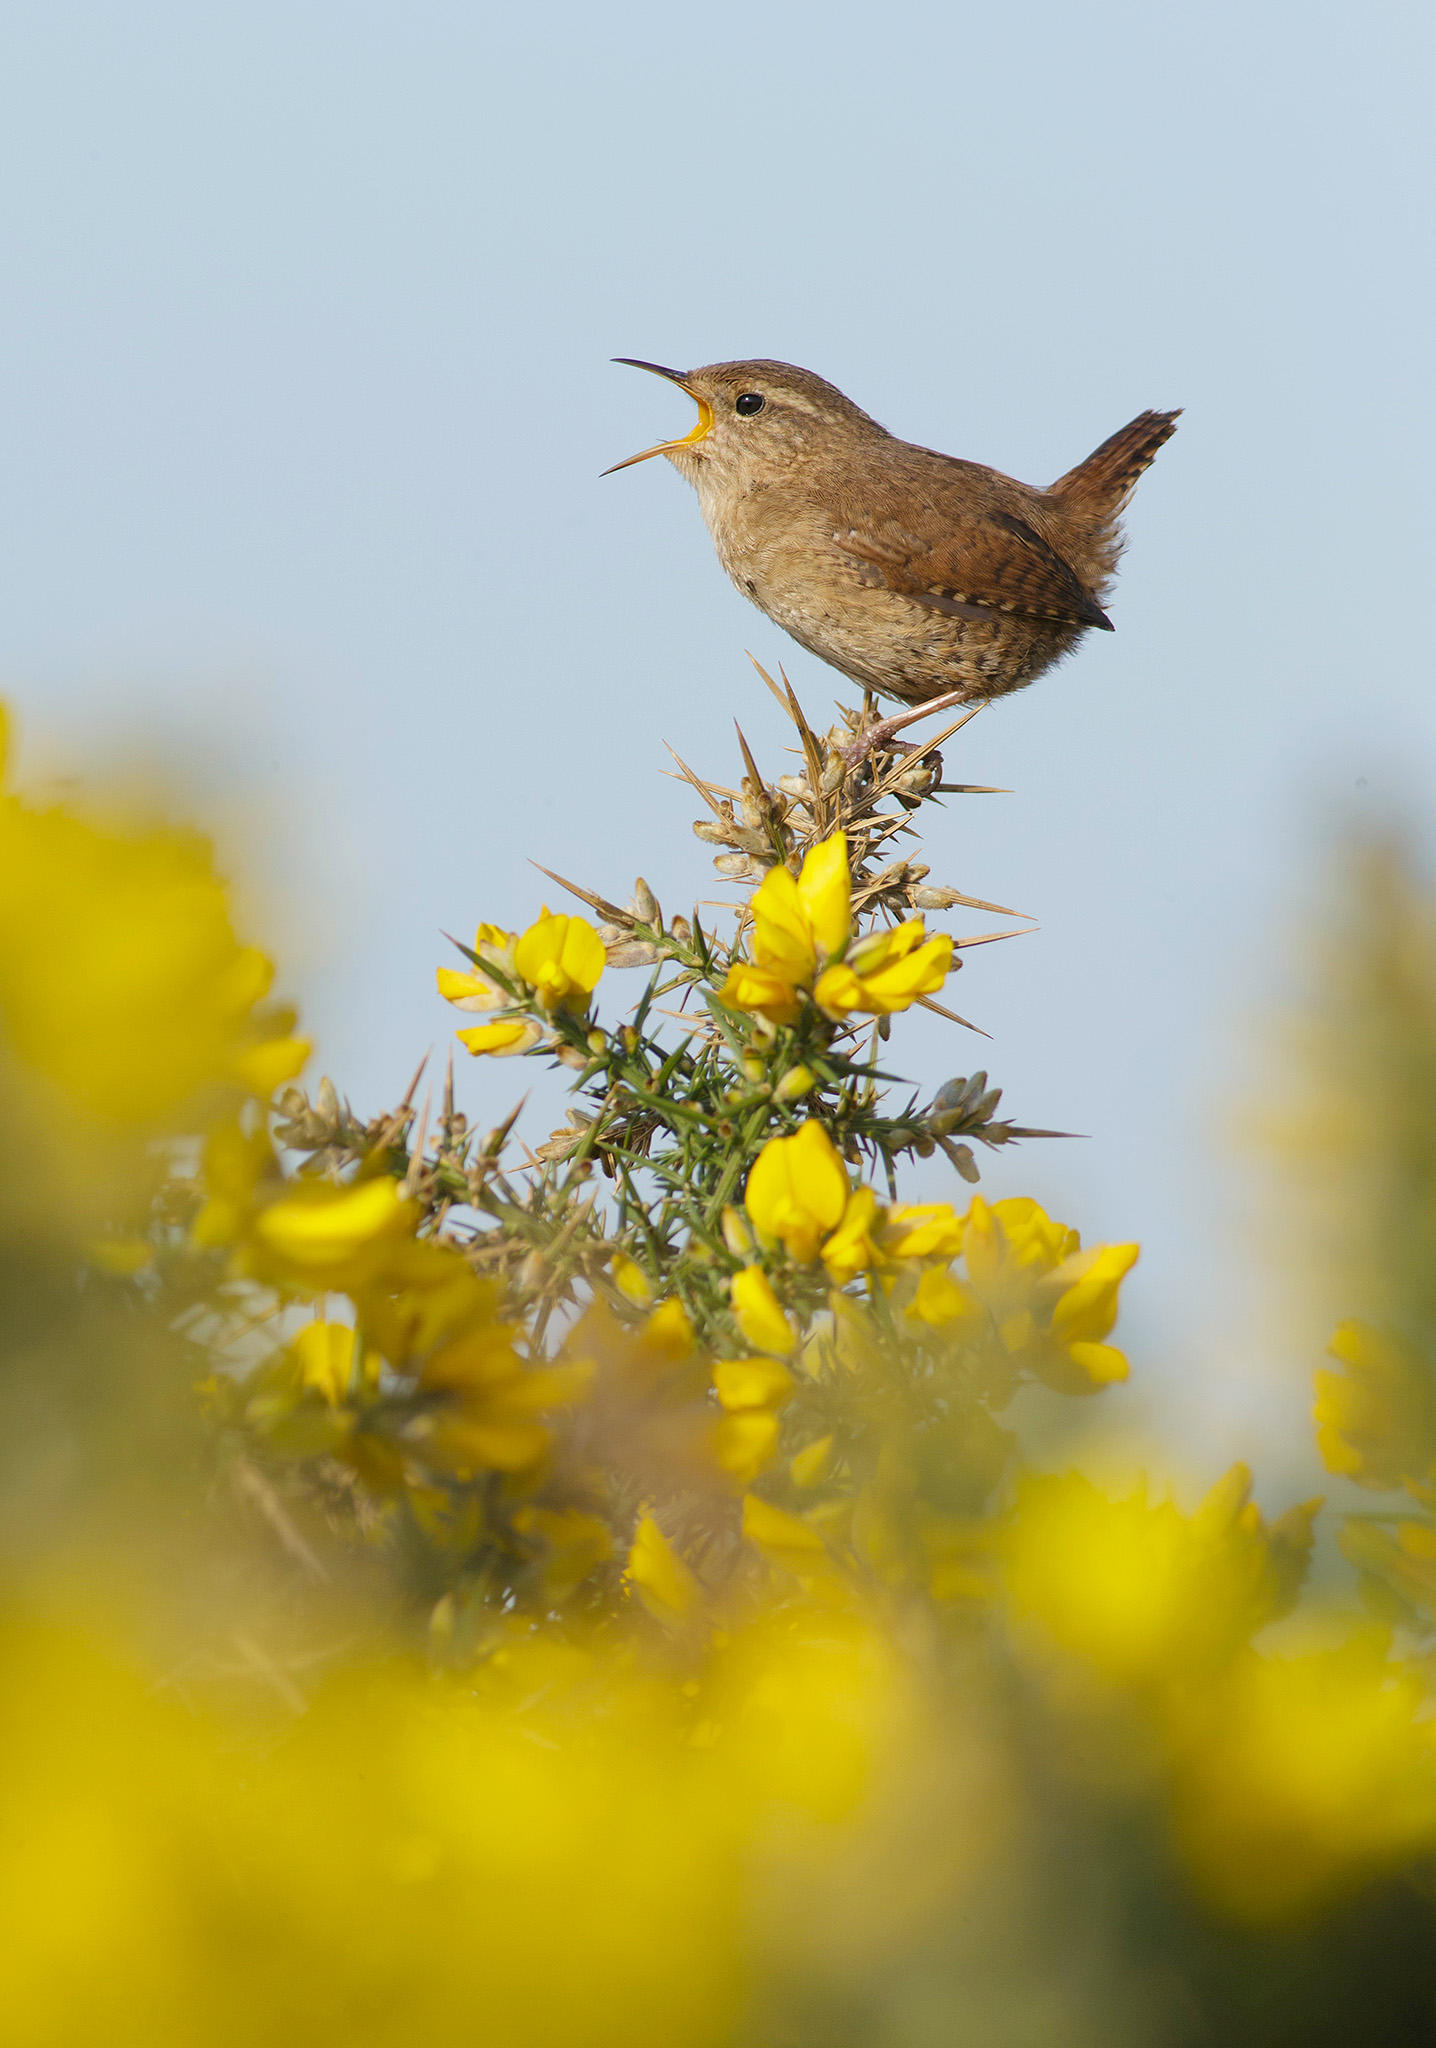 photographing wrens